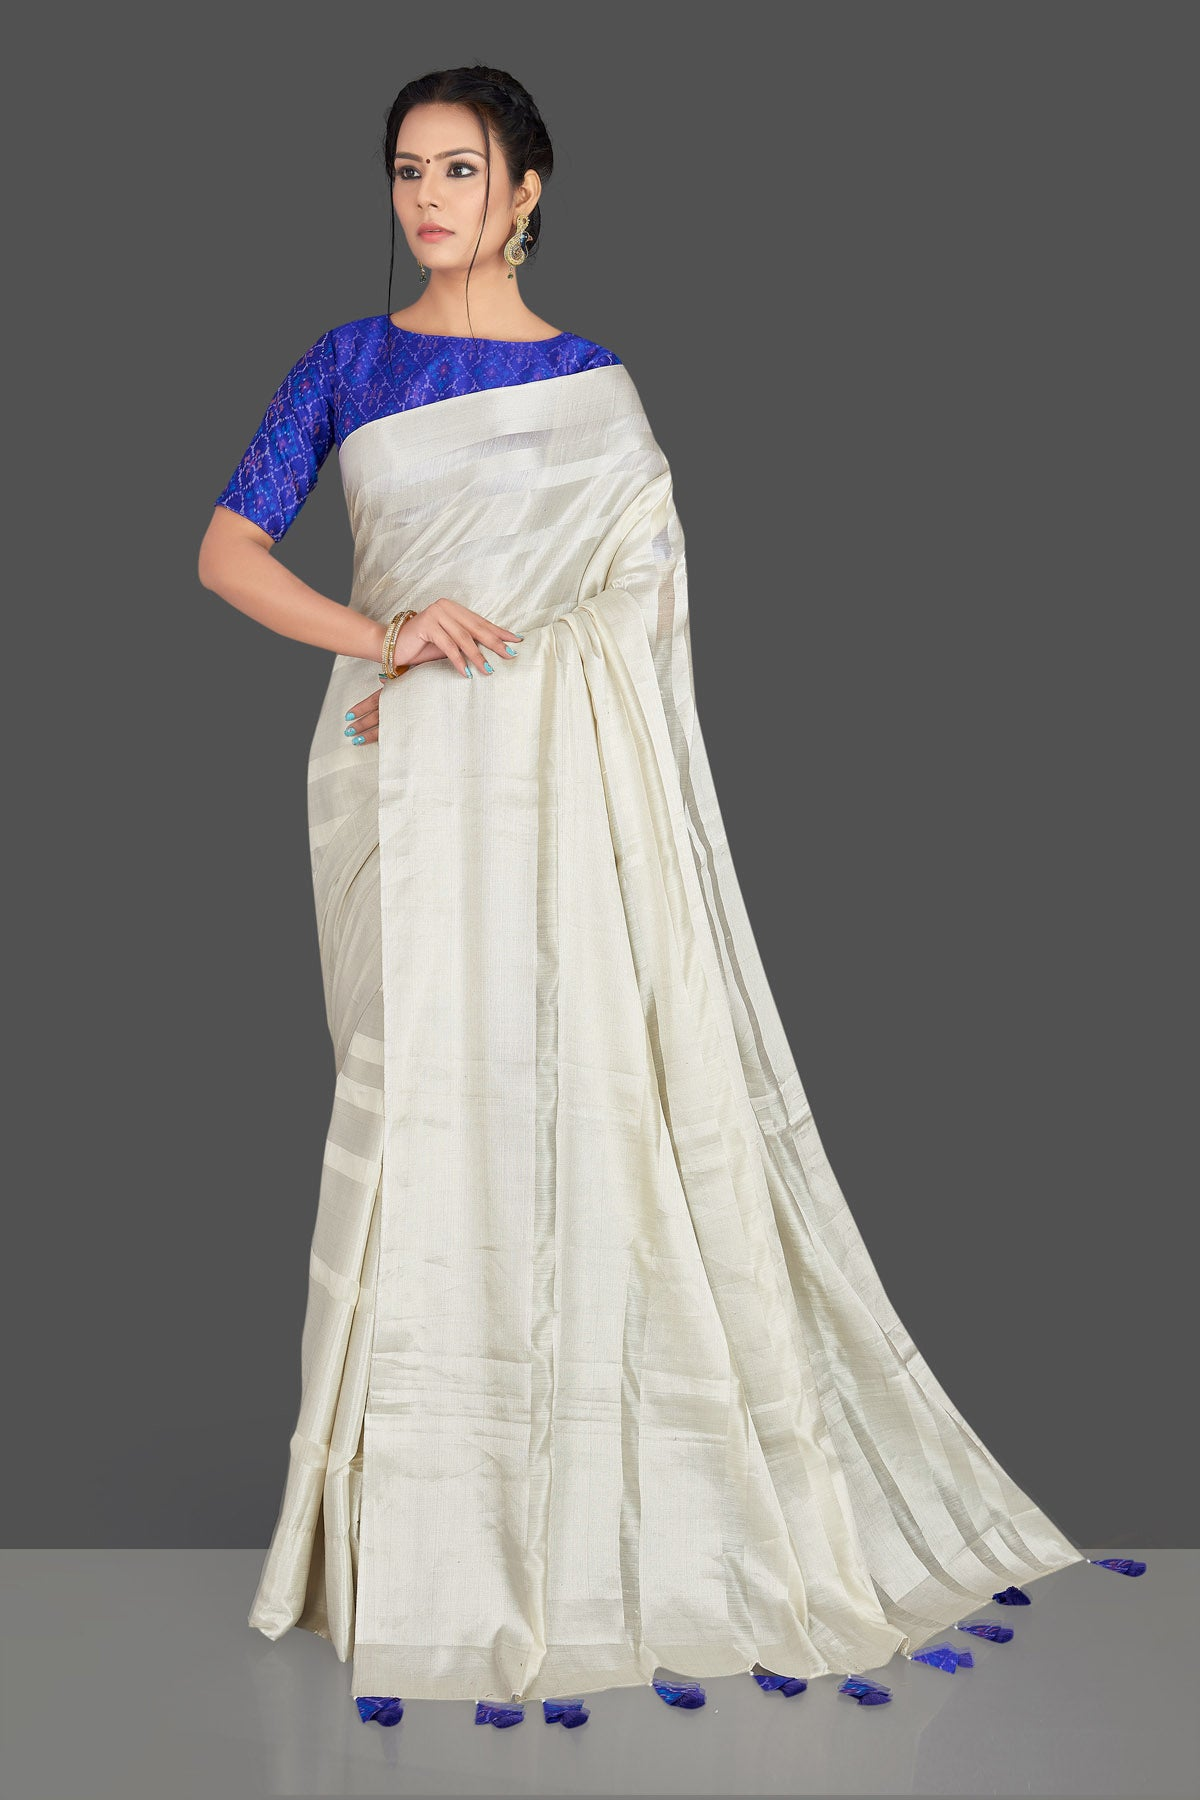 Buy lovely off-white tassar silk sari online in USA with blue patola ikkat saree blouse. Make your ethnic wardrobe rich with timeless handwoven sarees, tissue sarees, silk sarees, tussar saris from Pure Elegance Indian clothing store in USA. Find all the designer sarees for special occasions under one roof!-full view